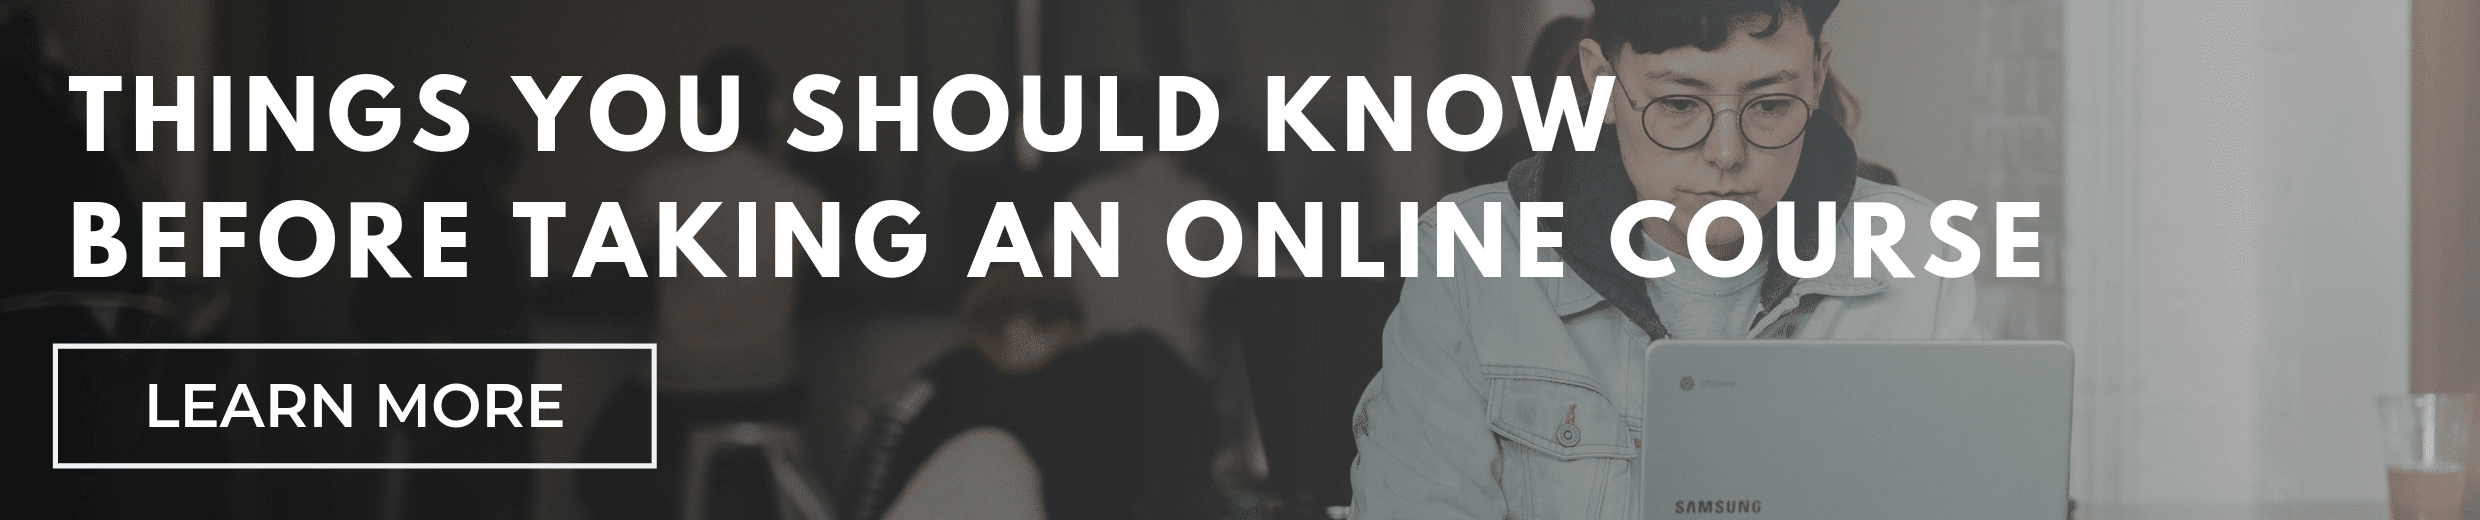 7 Things You Should Know Before Taking an Online Course